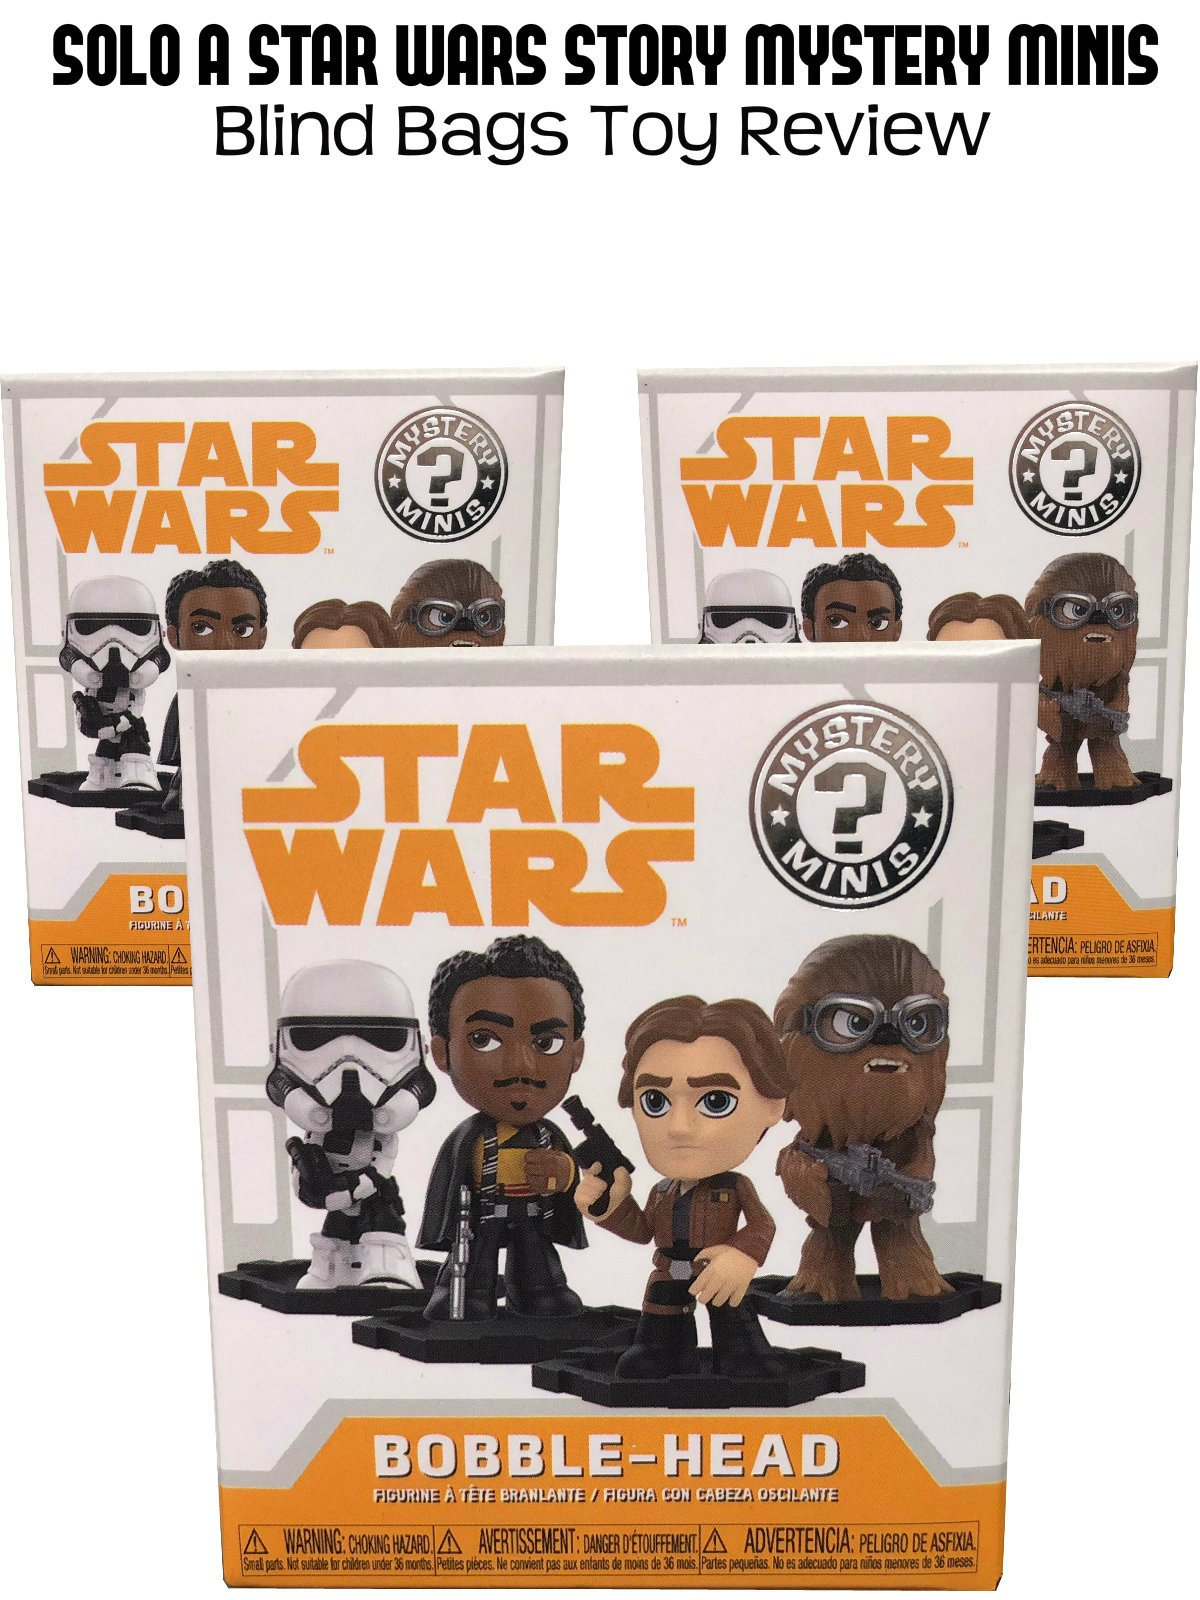 Review: Solo A Star Wars Story Mystery Minis Blind Bags Toy Review on Amazon Prime Video UK